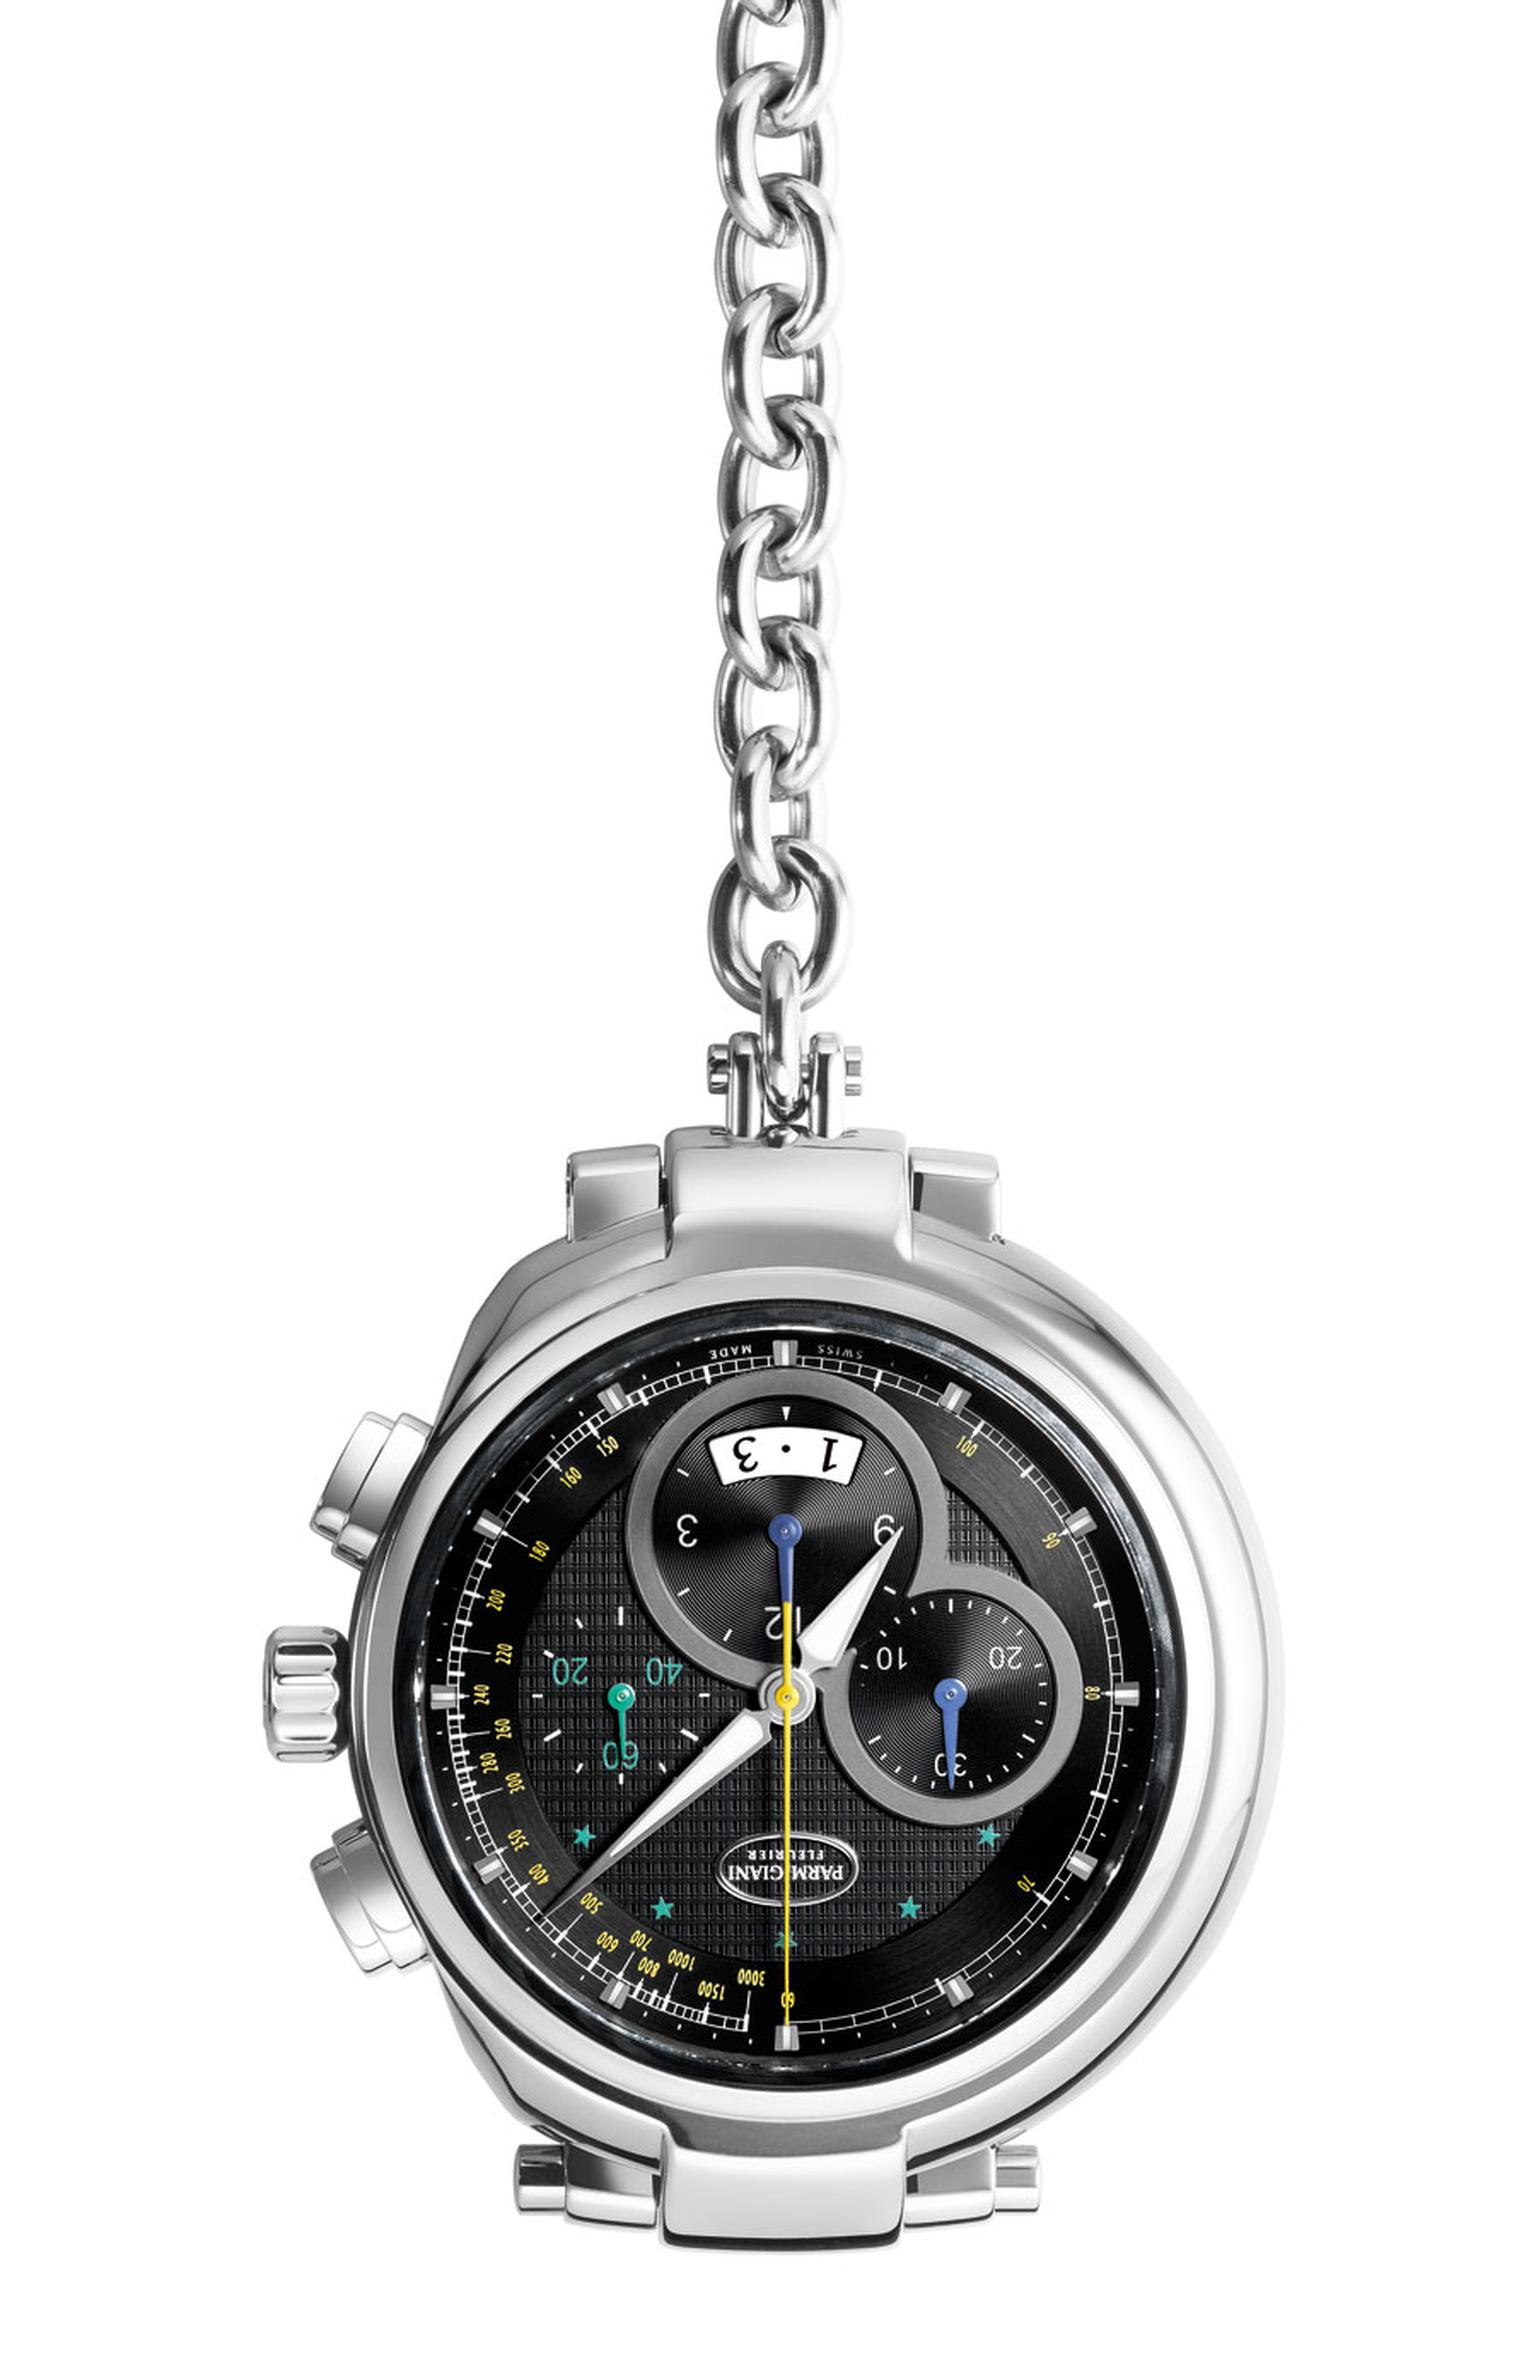 Parmagiani-Transforma-Chronographe-CBF---pocket.jpg